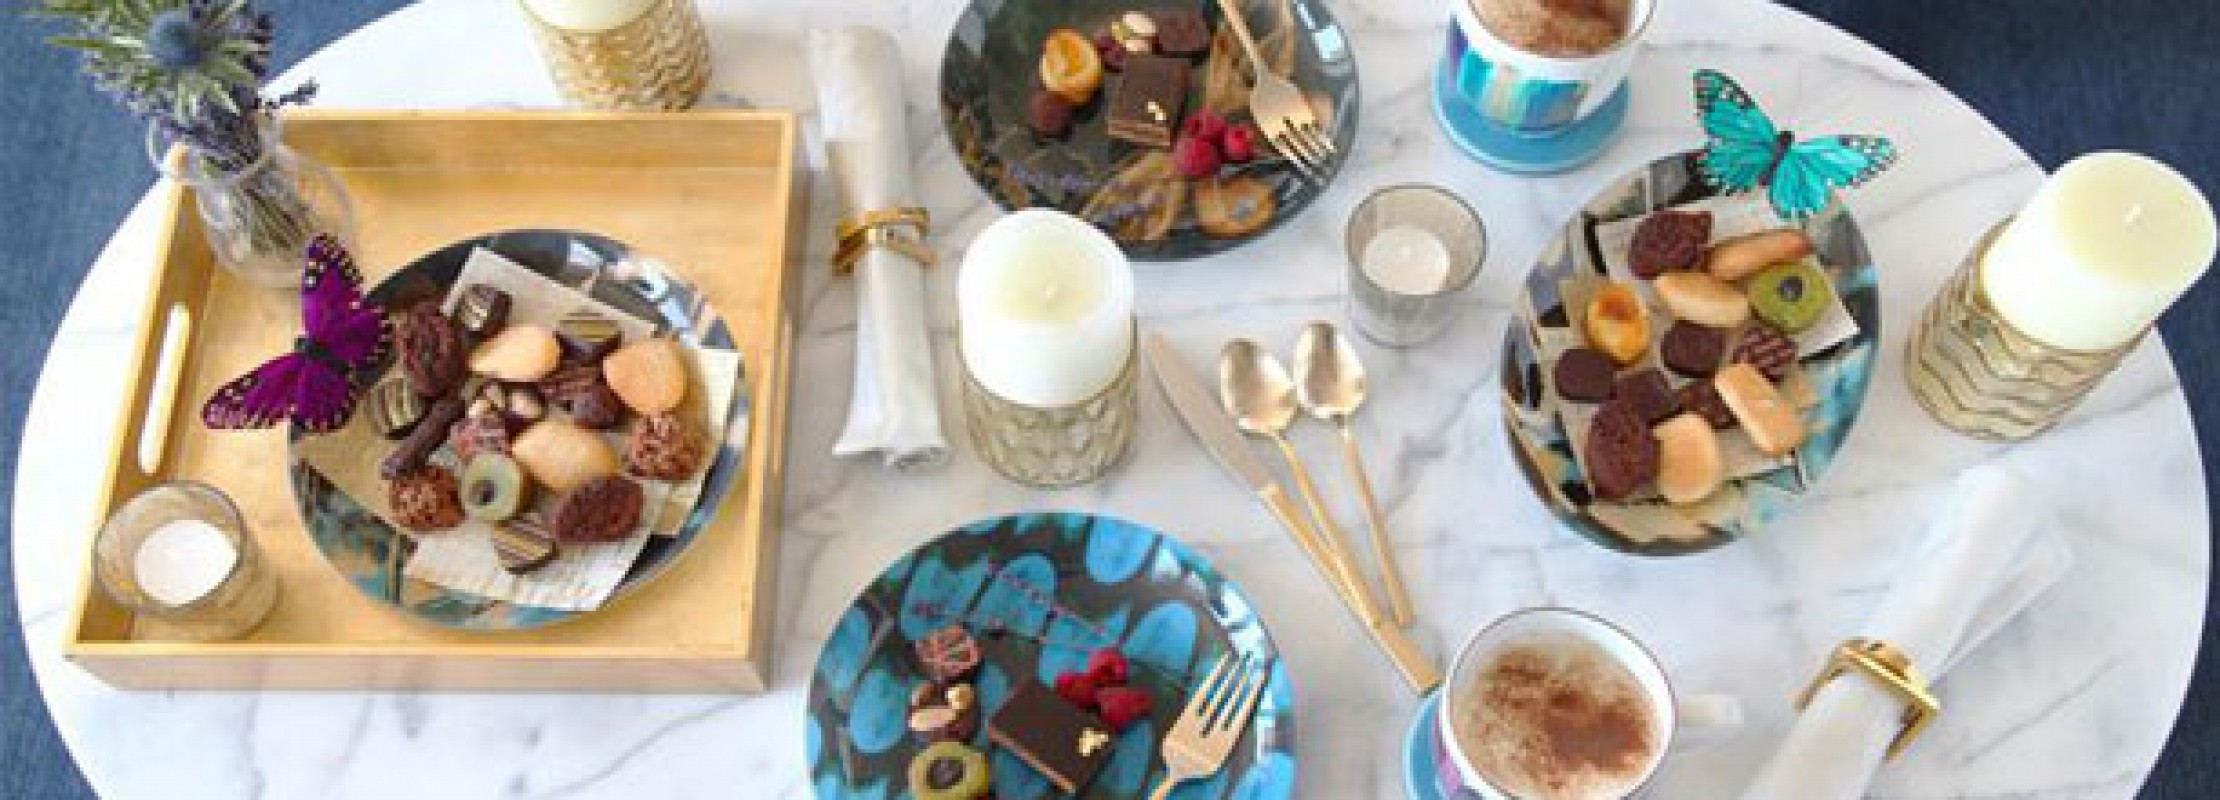 Hot Chocolate Party by West Elm